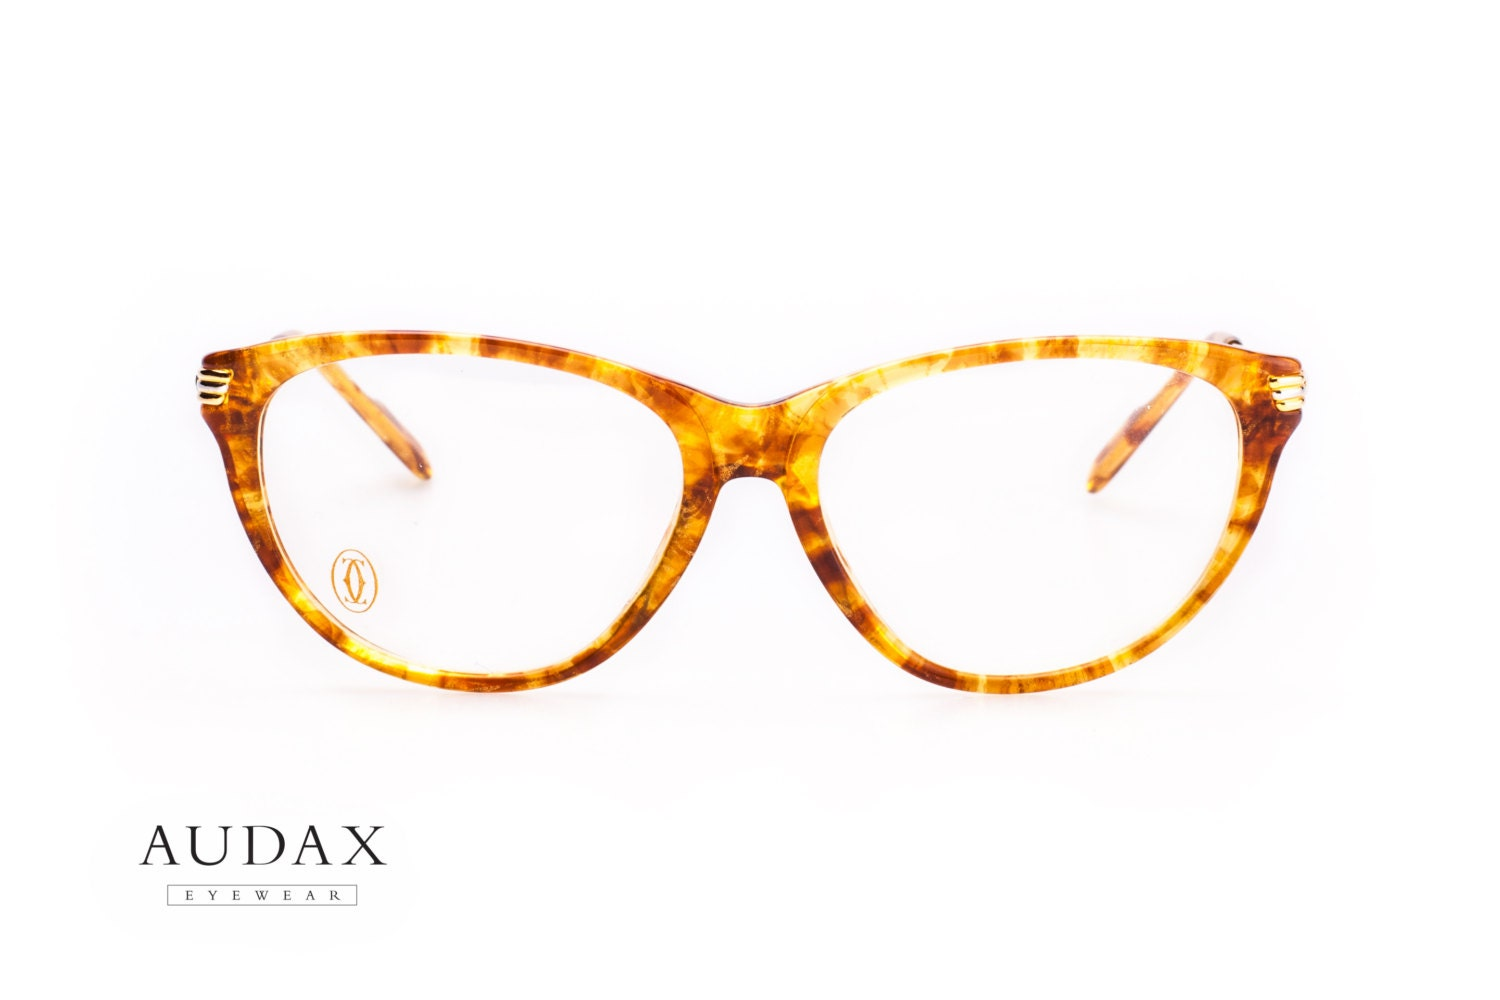 76390b6d9aa4 Cartier Eclat   luxury cateye eyeglasses   ladies eyeglasses   18kt gold  plated temples and translucent